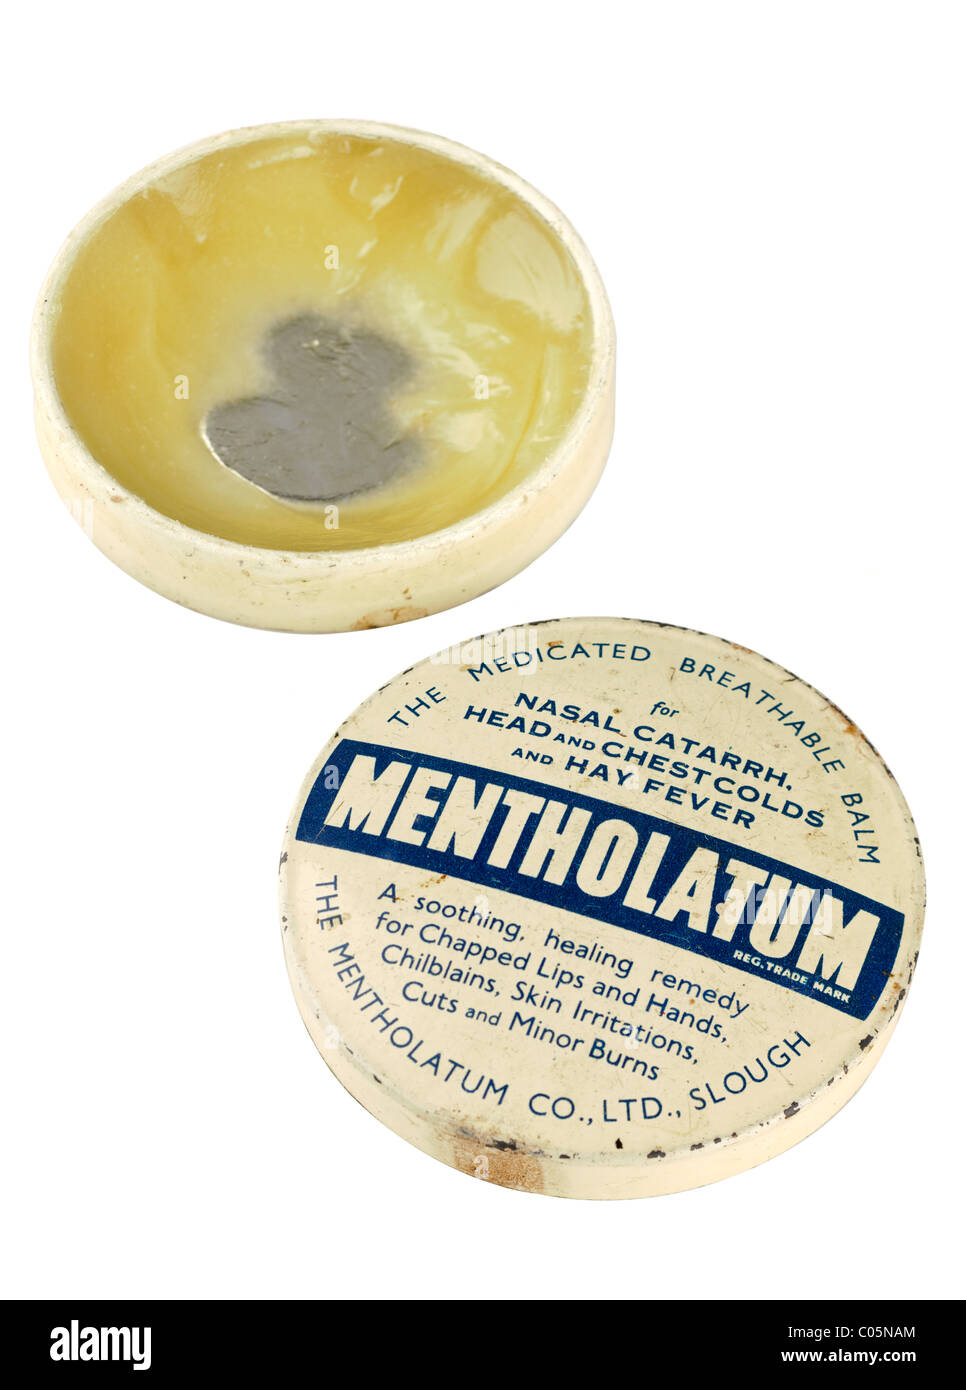 Old half full vintage Mentholatum tin containing a medicated breathable balm. EDITORIAL ONLY - Stock Image